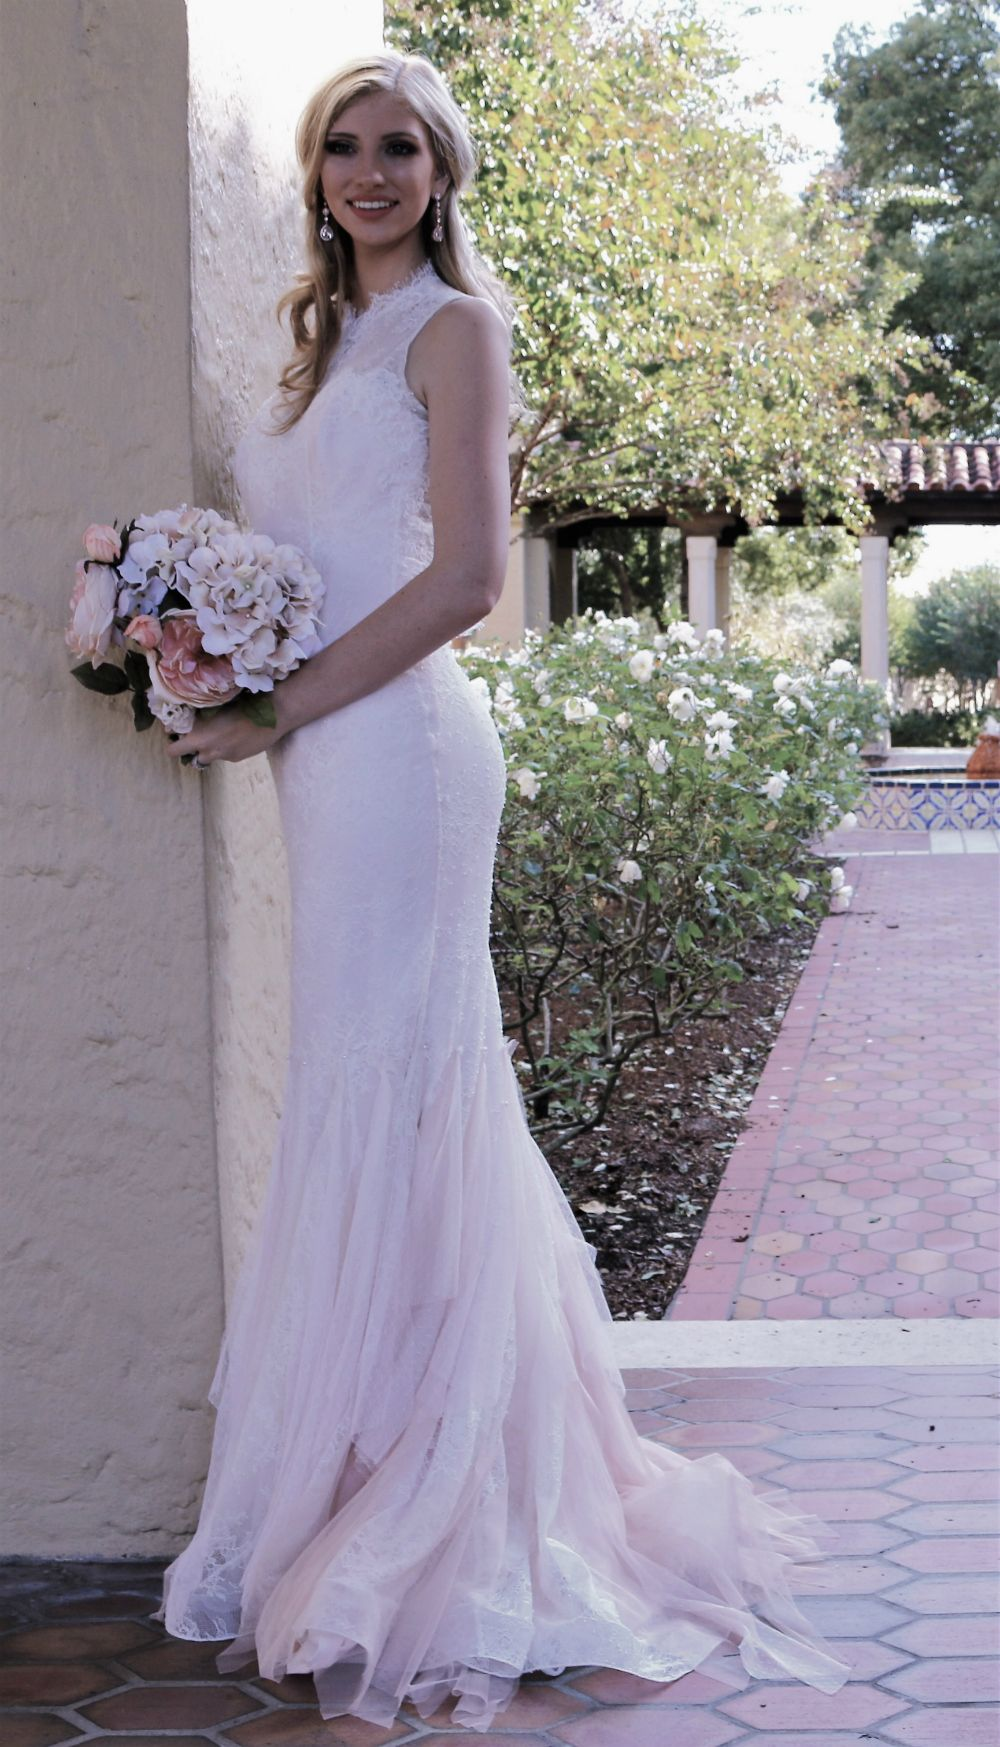 60s lace wedding dress  Romantic and Enchanting Wedding Dress Oneofakind gown inspired by